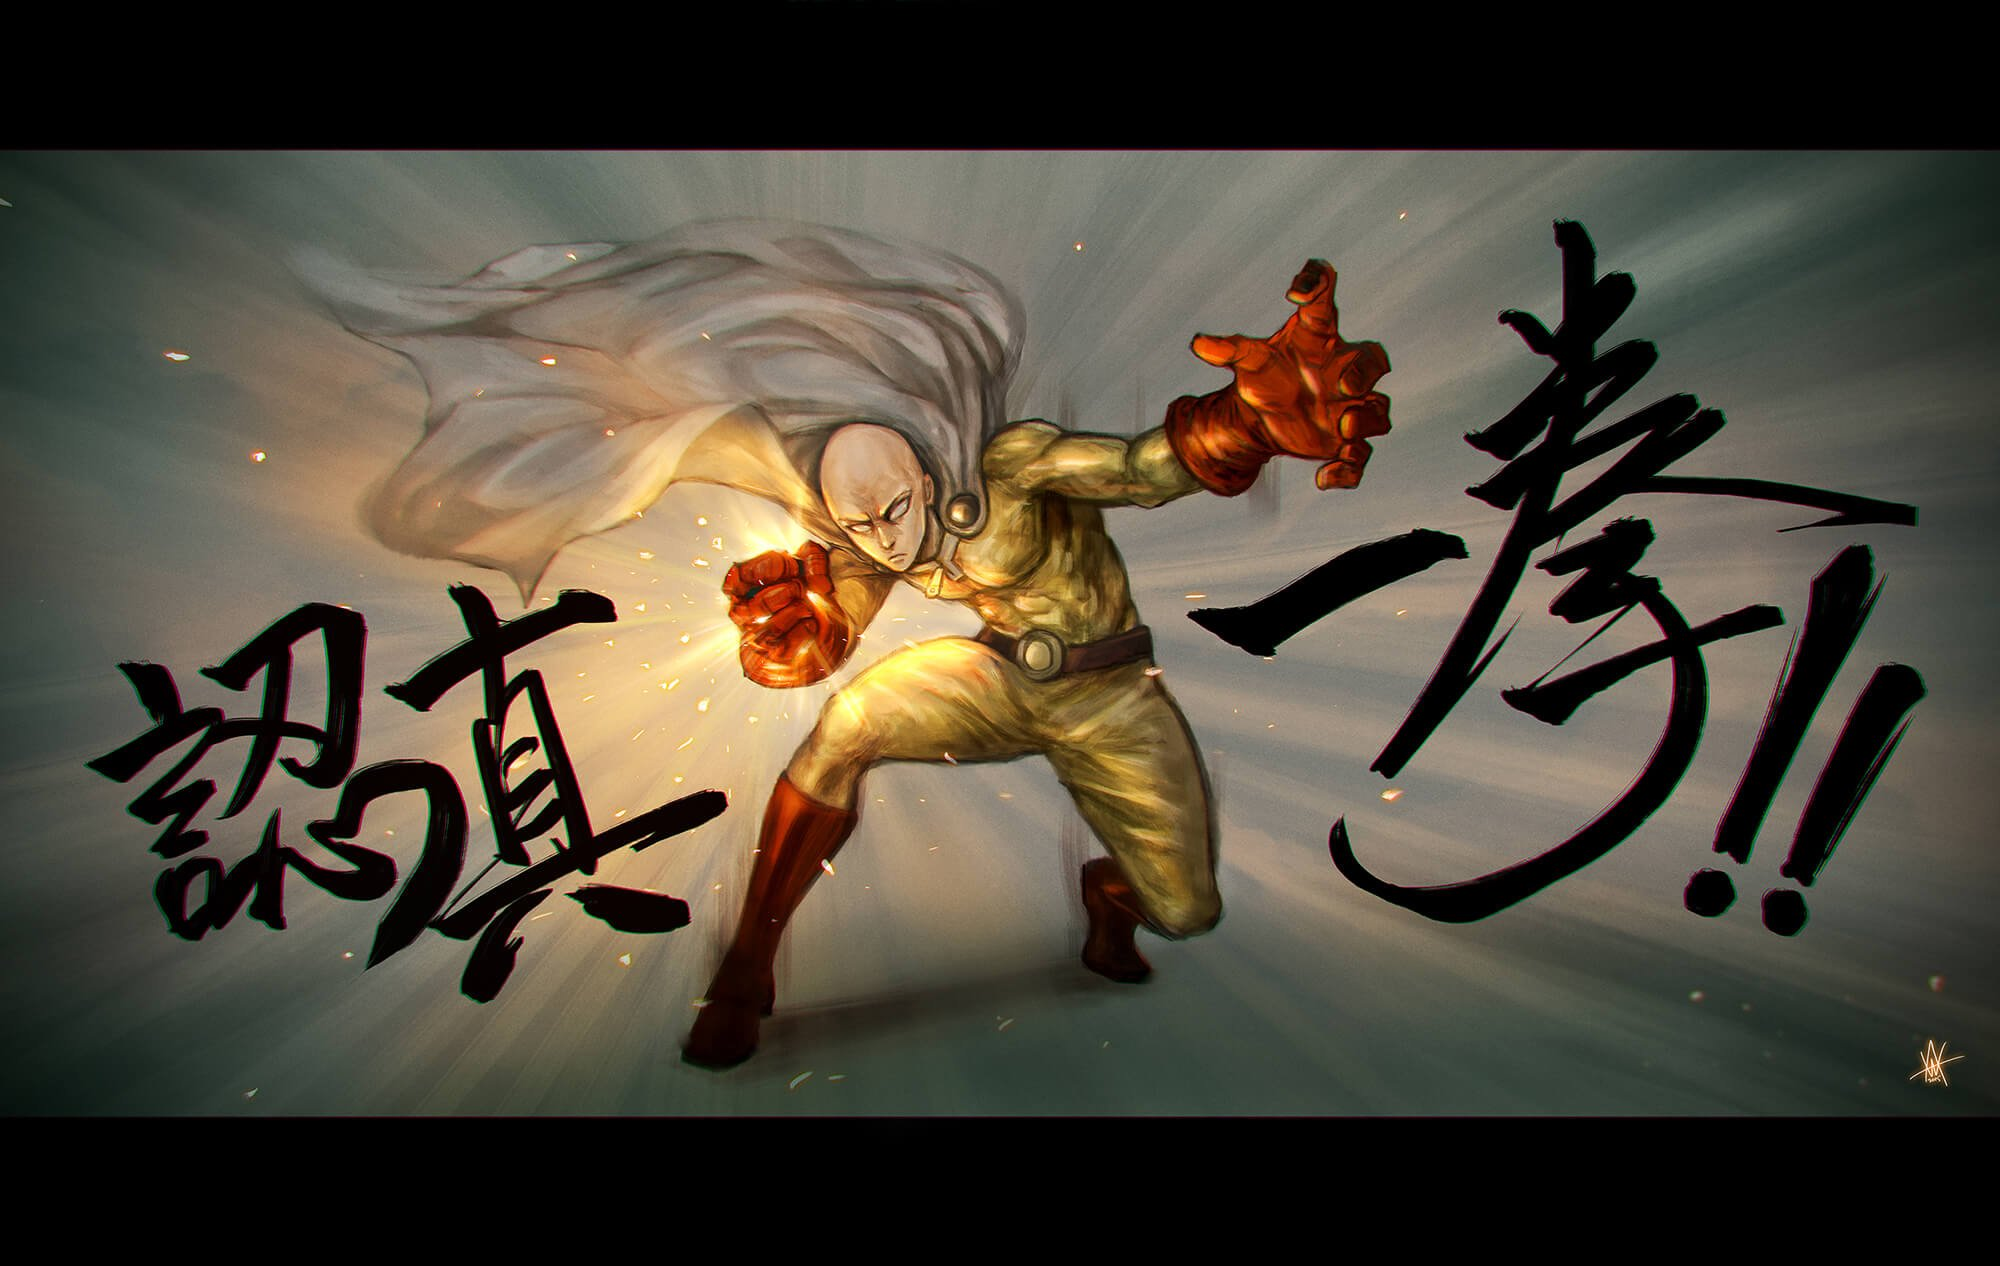 One-Punch Man Season 2 Release Date is 9th April 2019